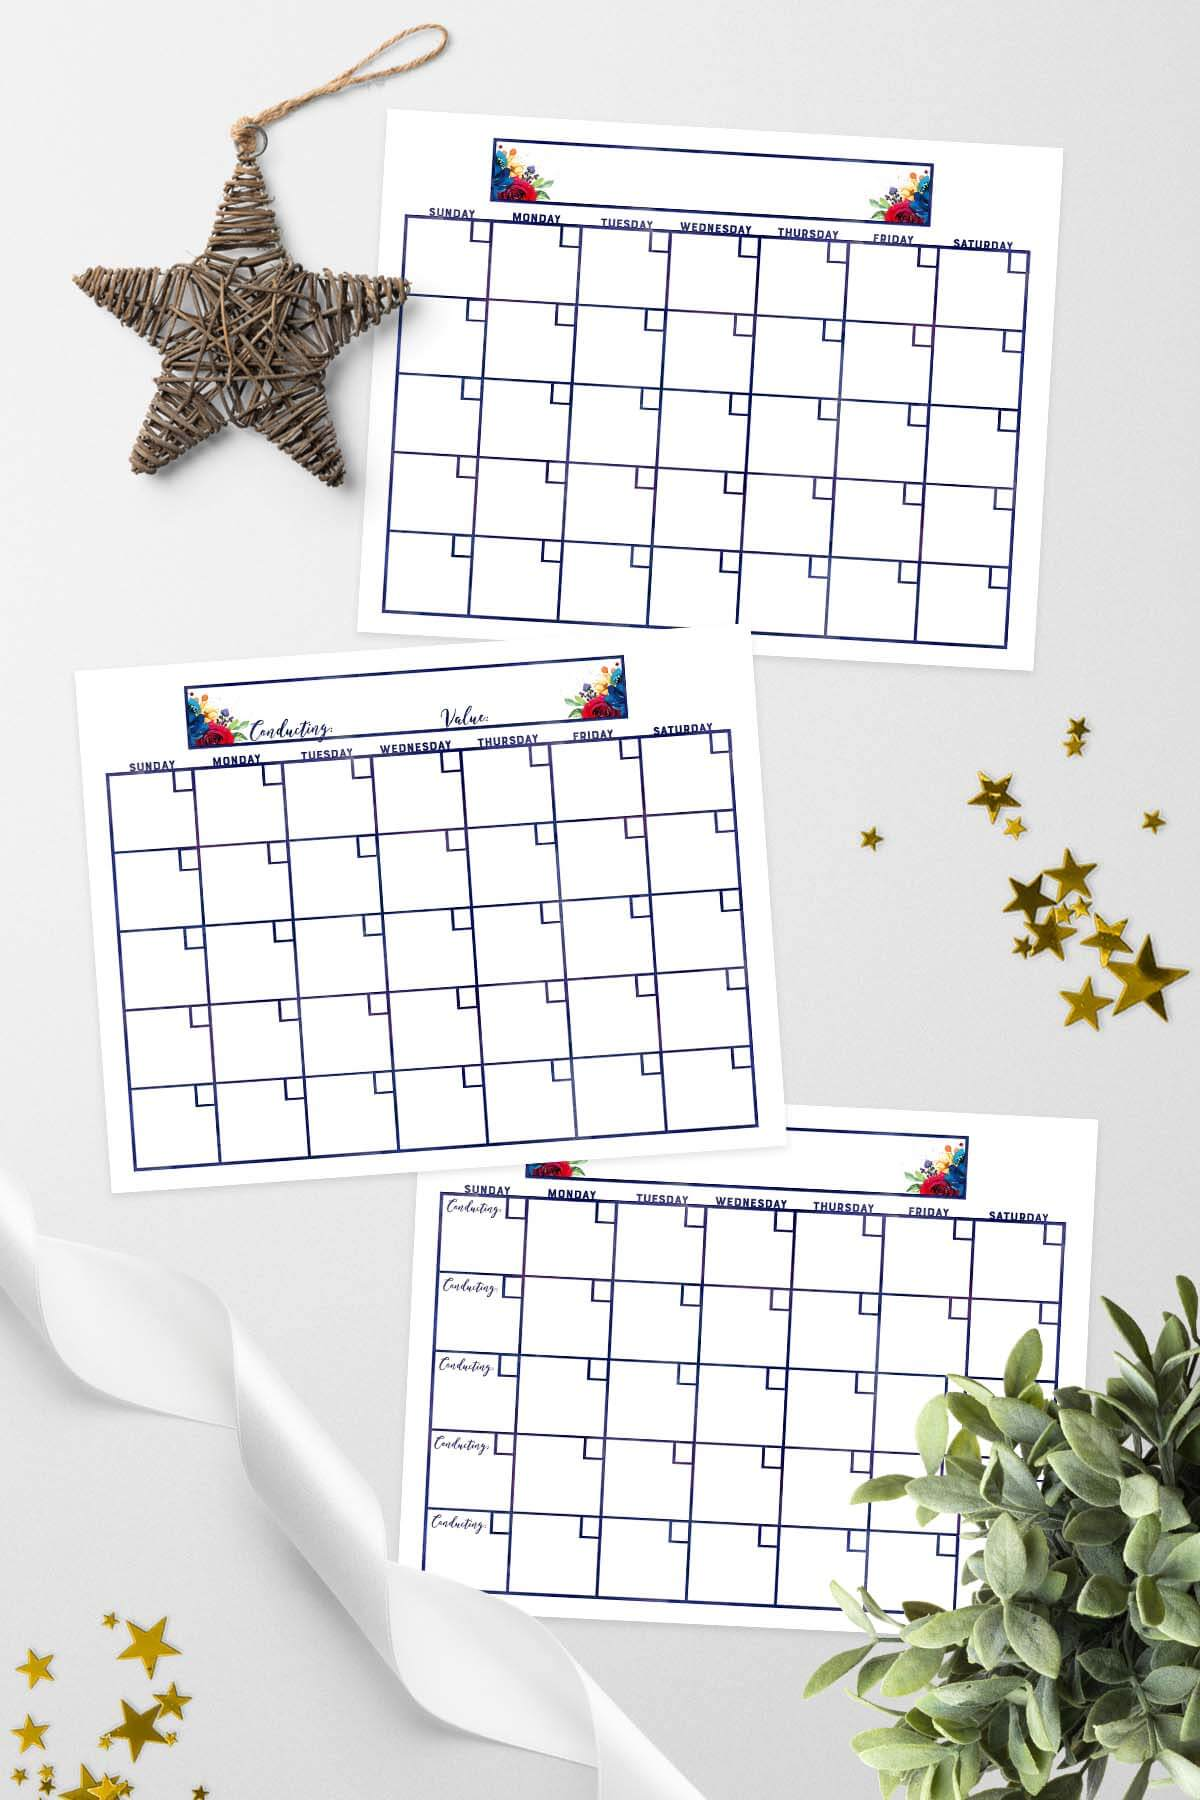 Mutual 2018 Young Women Calendars & All About Me Page